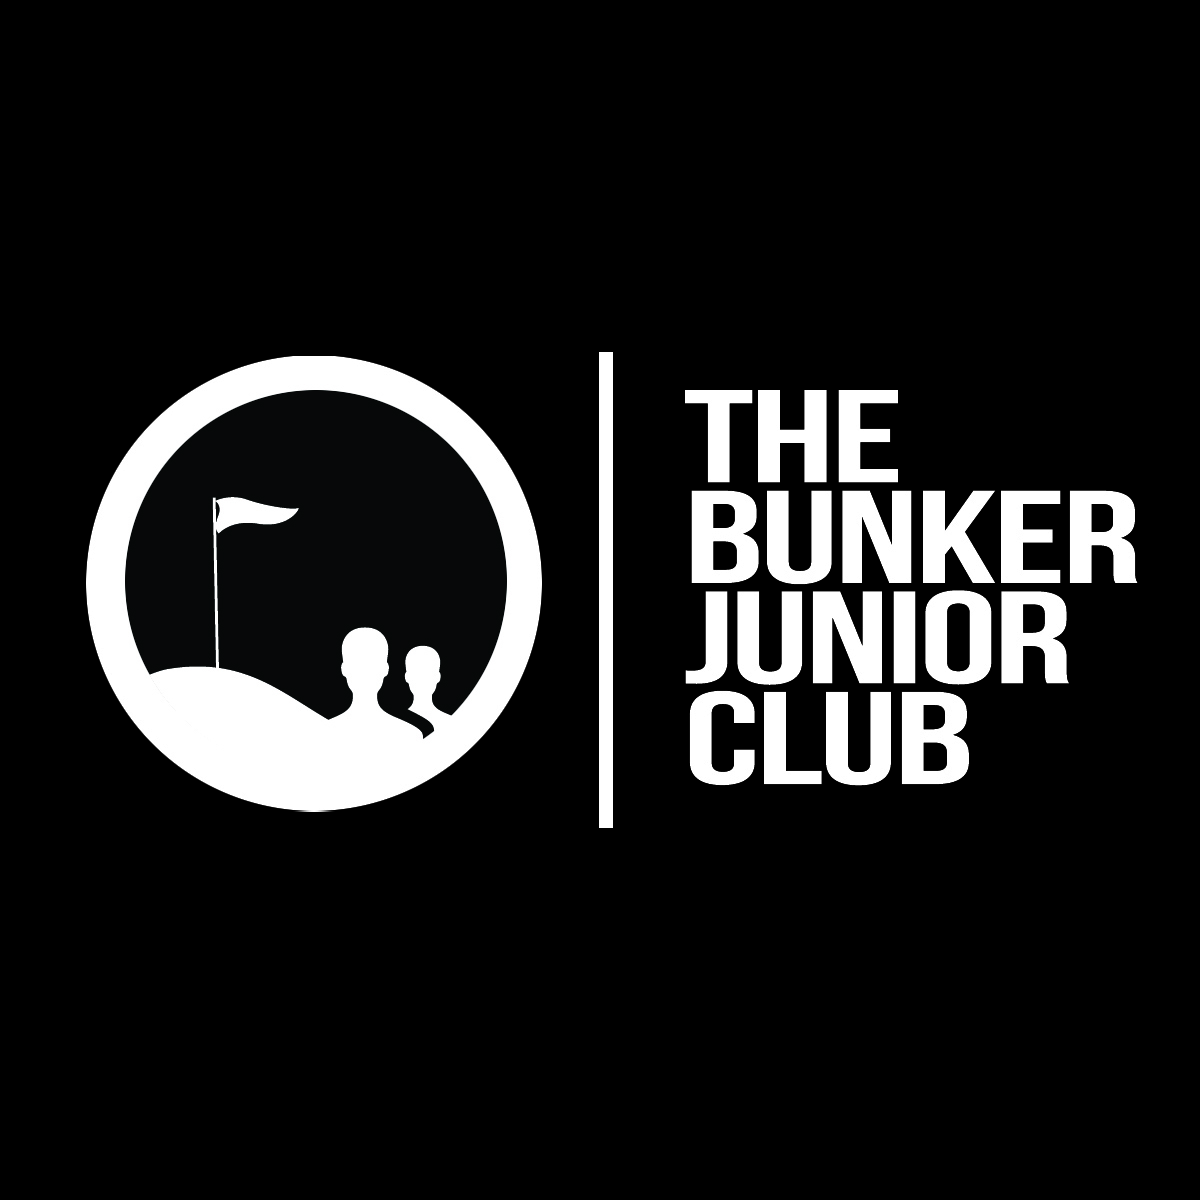 juniorClub_websquare.jpg